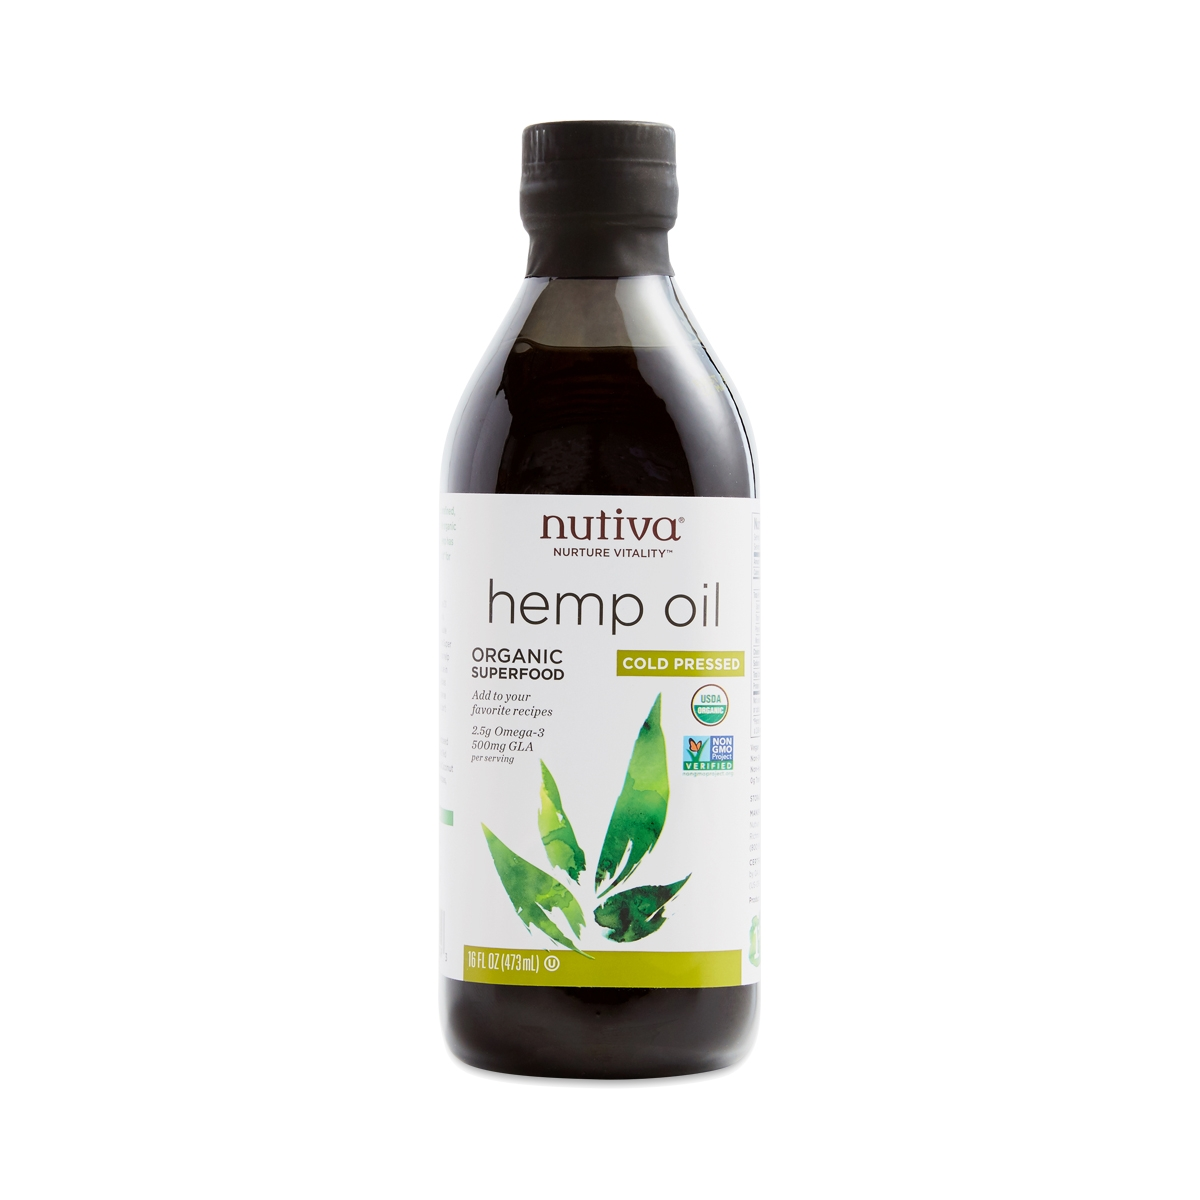 Nutiva Hemp Oil is Organic, Certified Vegan, Non-GMO, Cold-pressed superfood. It has Omega-3s, Omega-6s, and Omega-9s!  1 Tablespoon